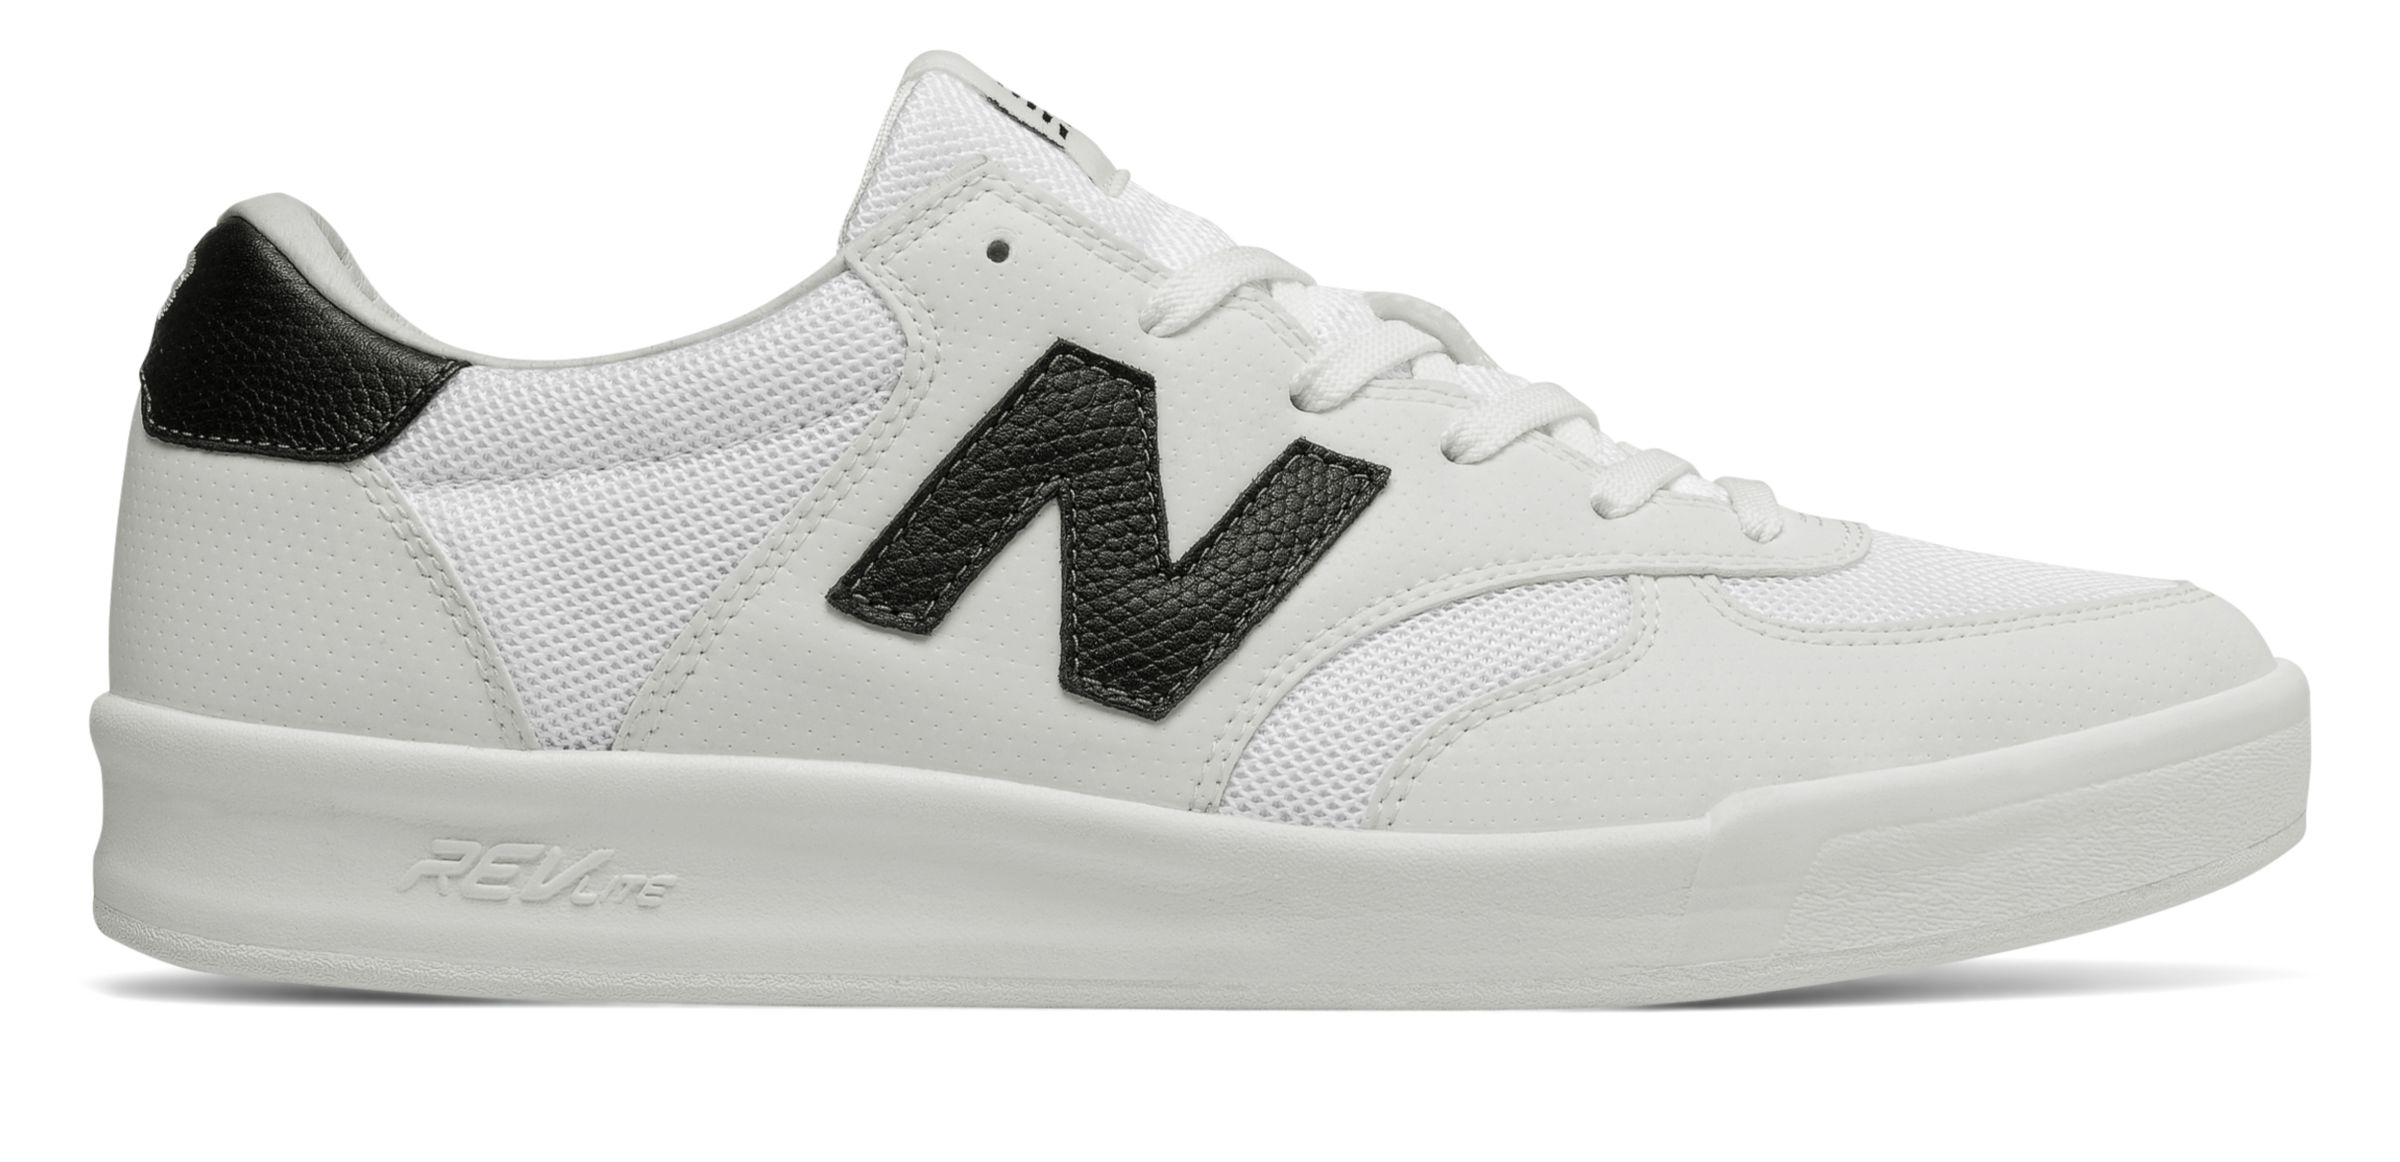 a399906736ab1 300 New Balance Men's Lifestyle Shoes - CRT300GH - Fitness ...